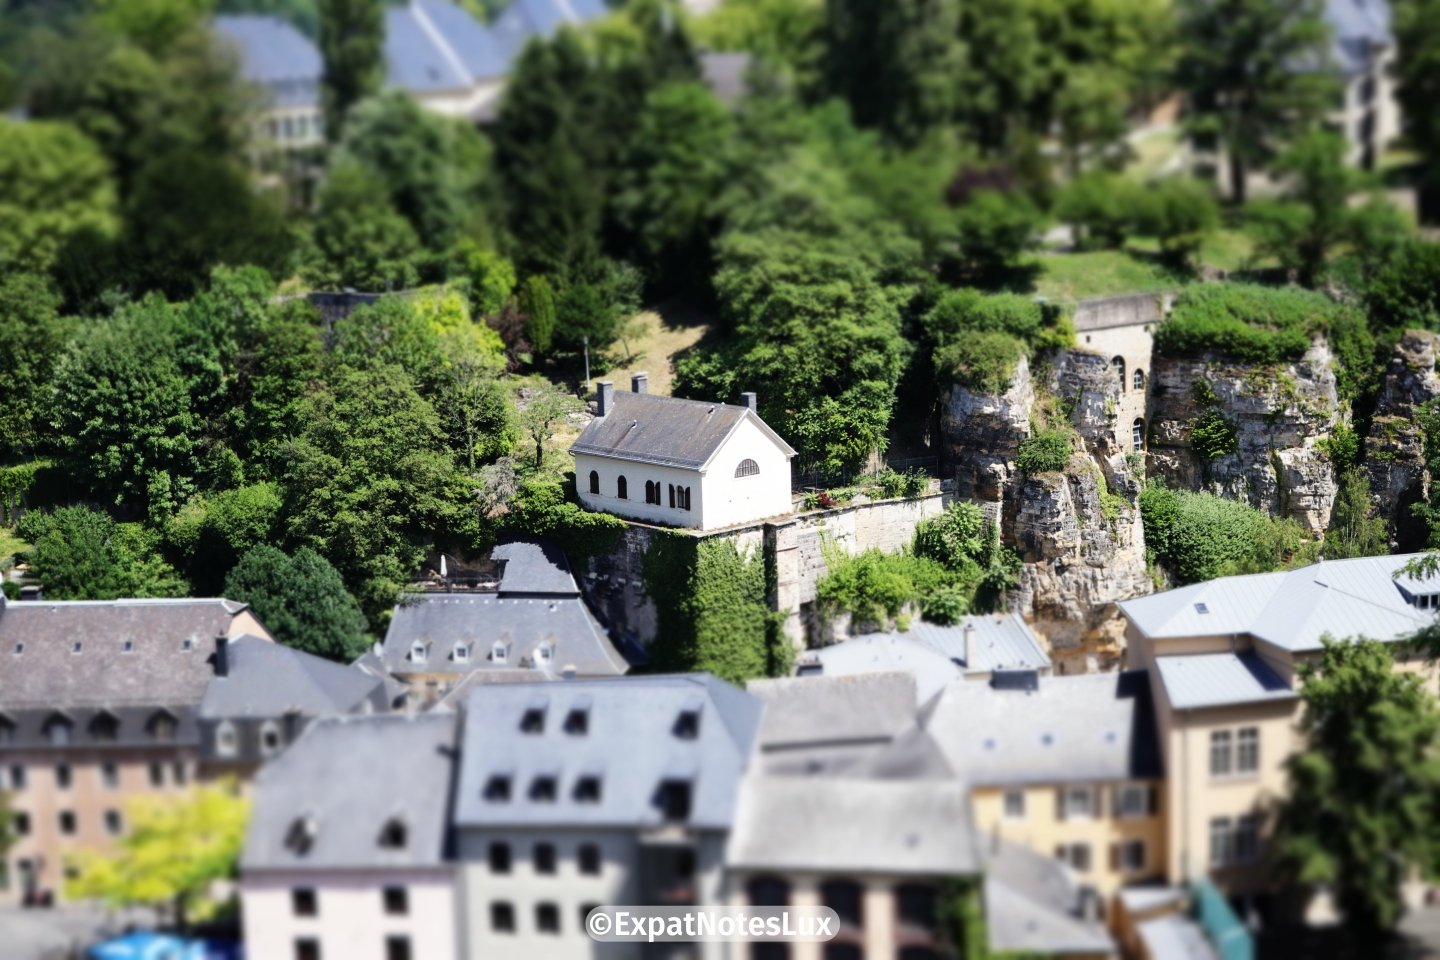 An old house on cliff in Luxembourg grund